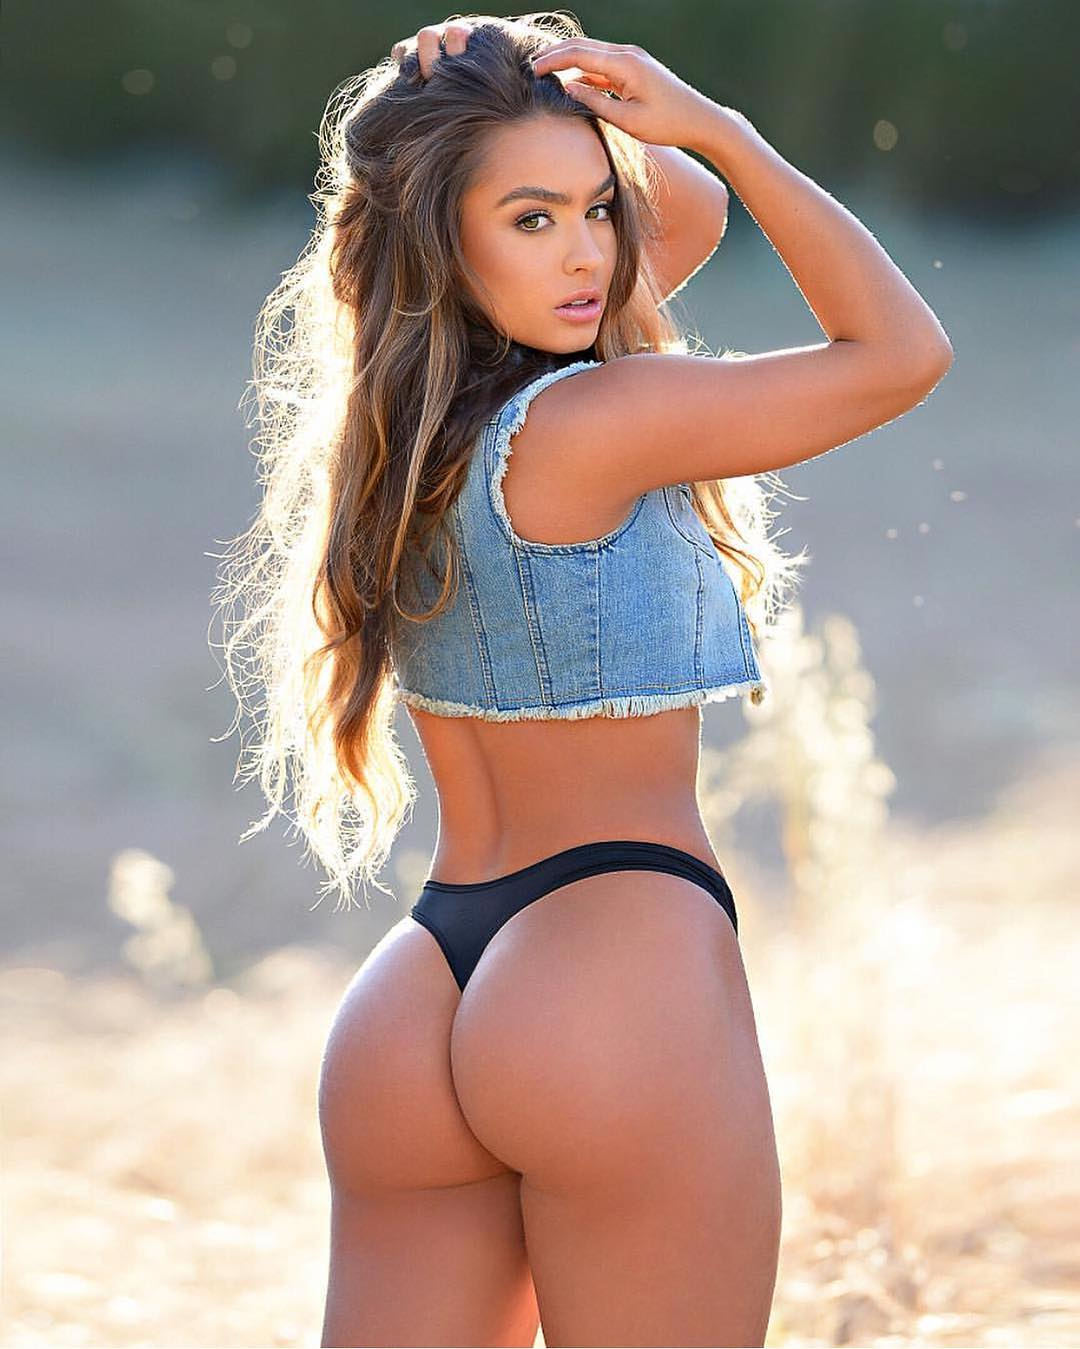 3063519b89eec Sommer Ray Bio, Height, Age, Weight, Boyfriend and Facts - Super ...